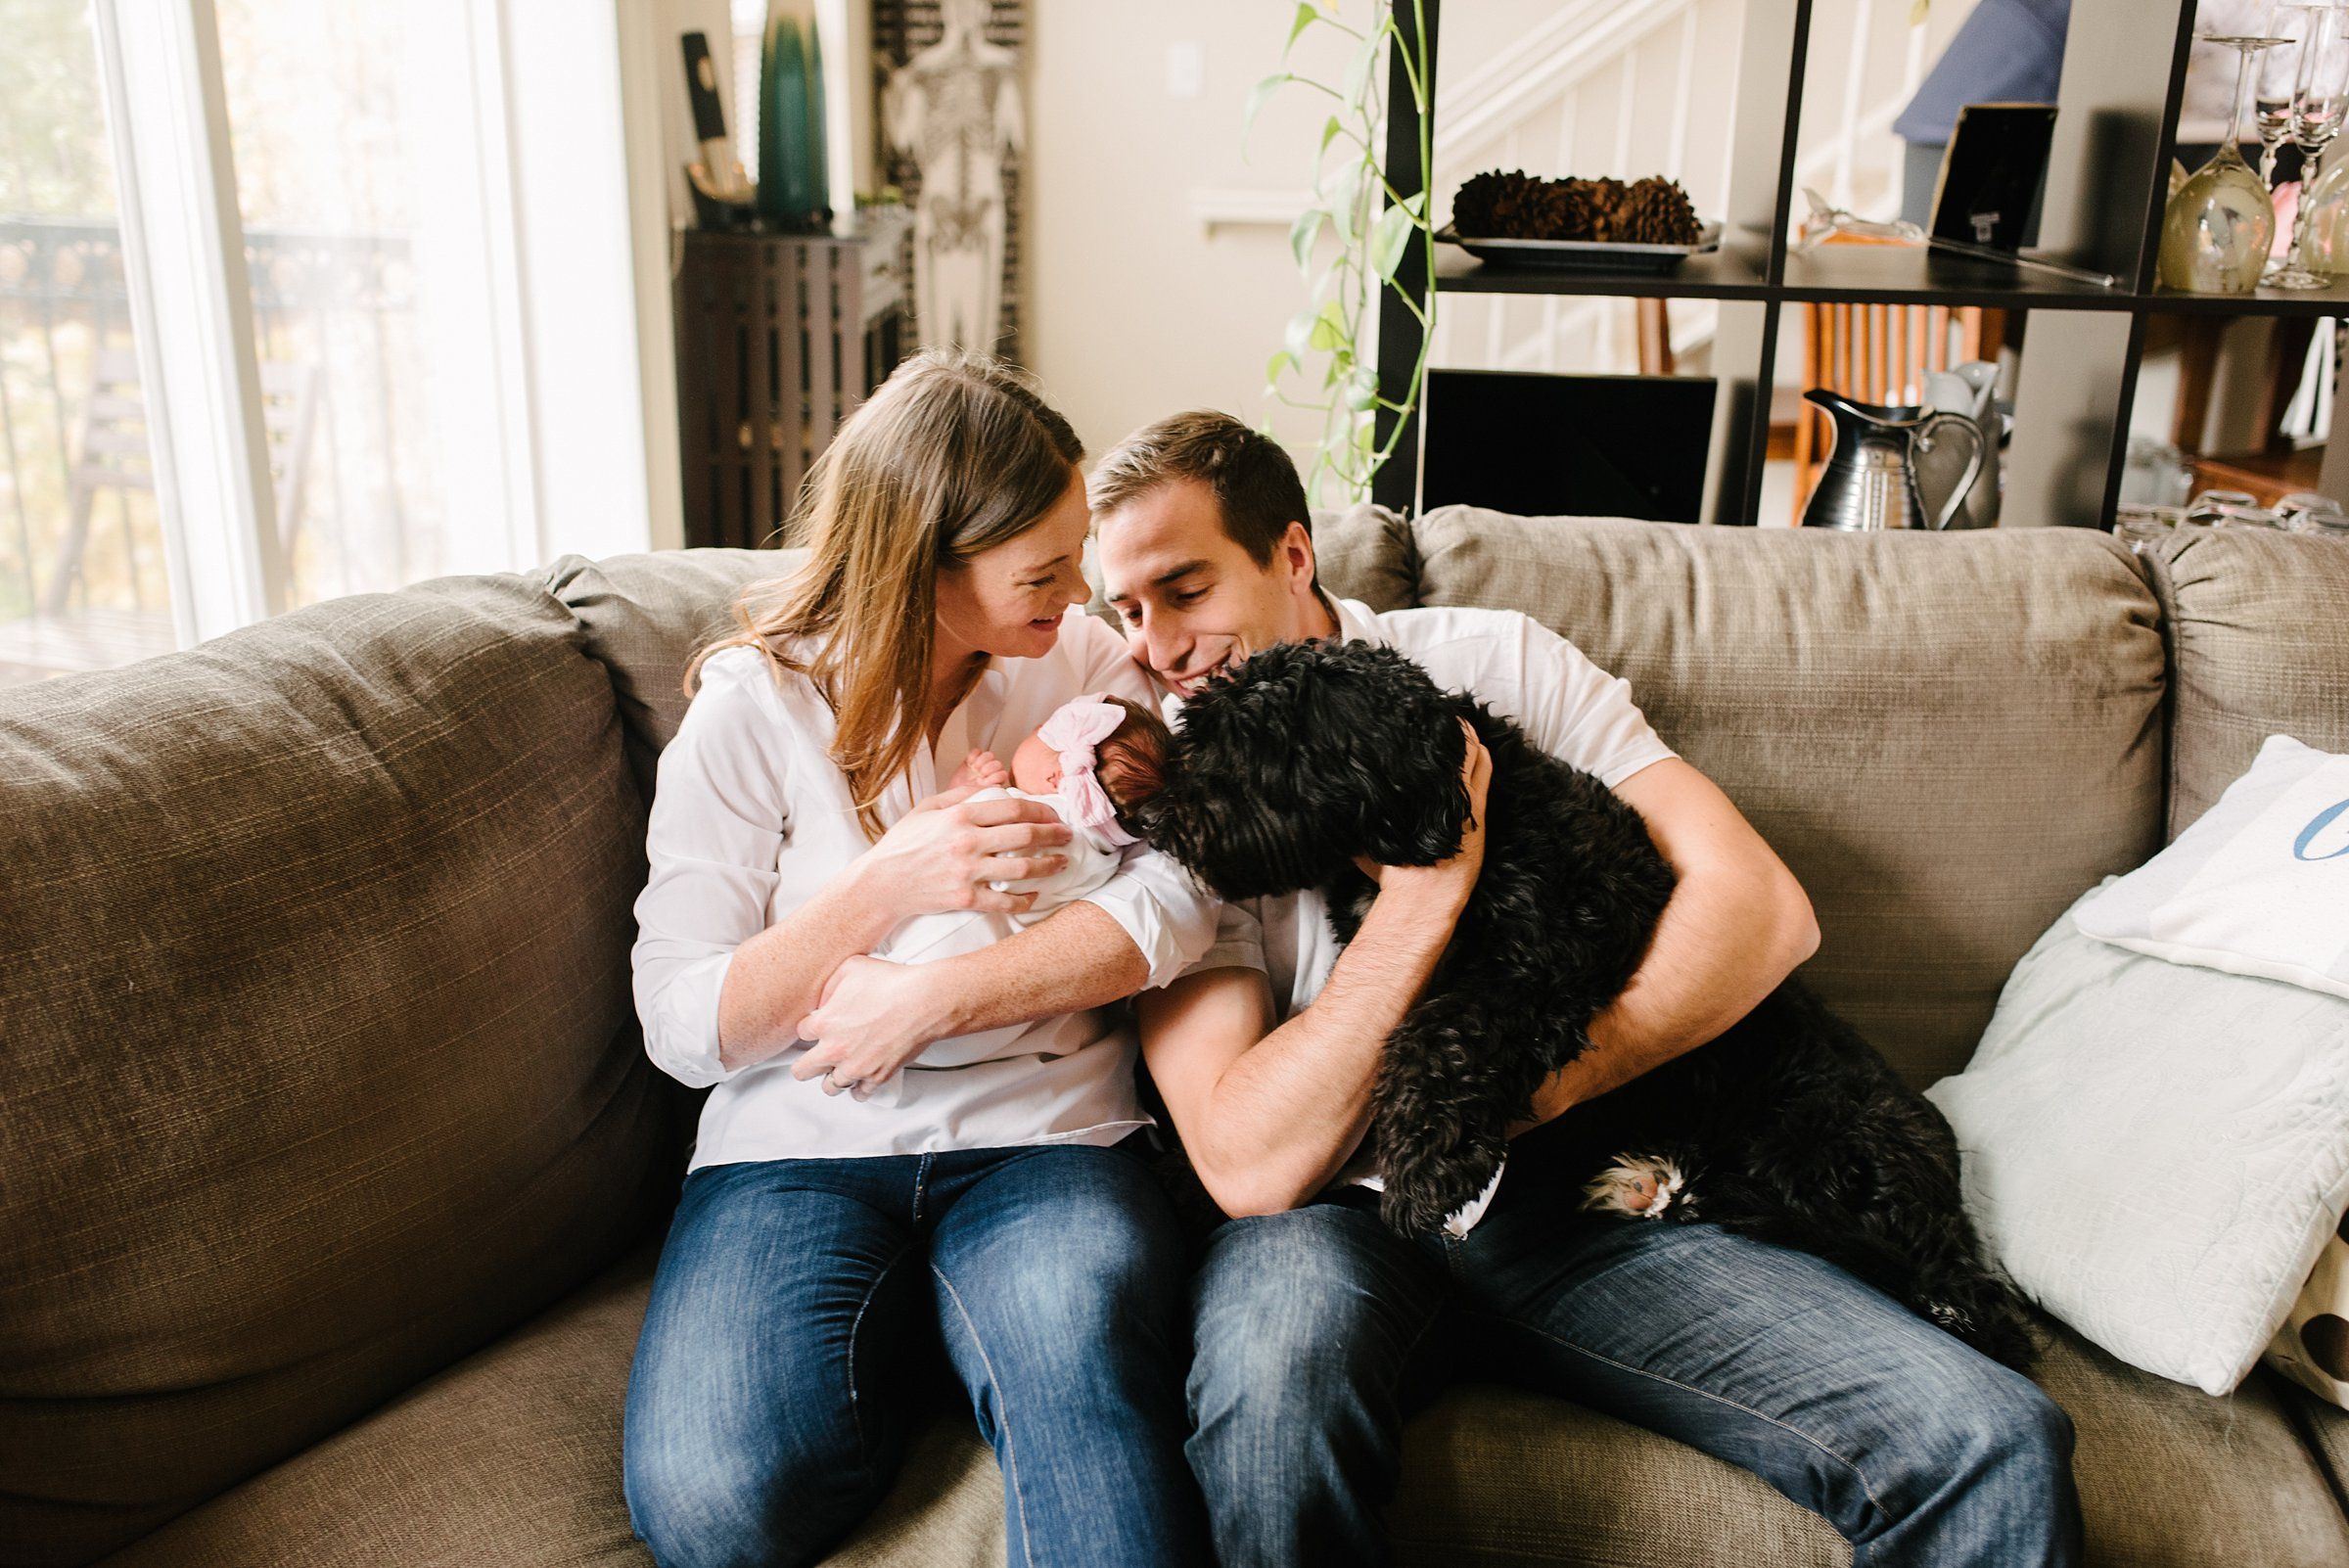 Newborn Lifestyle Photography Pittsburgh Rachel Rossetti_0441.jpg